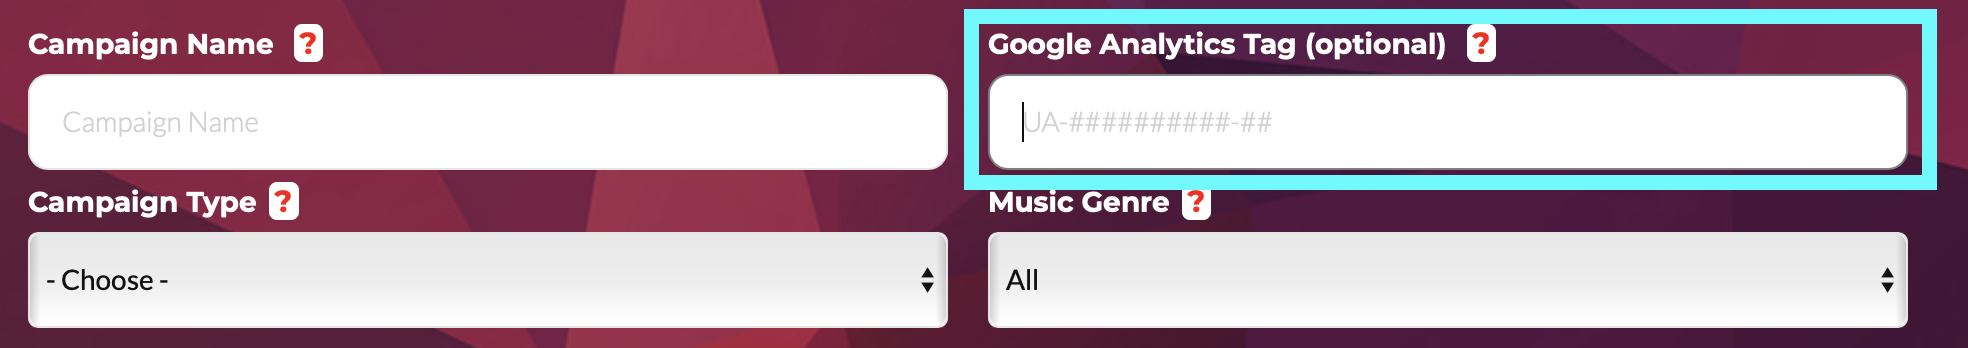 Step 7. Paste your Google Analytics ID tag into the field shown above.